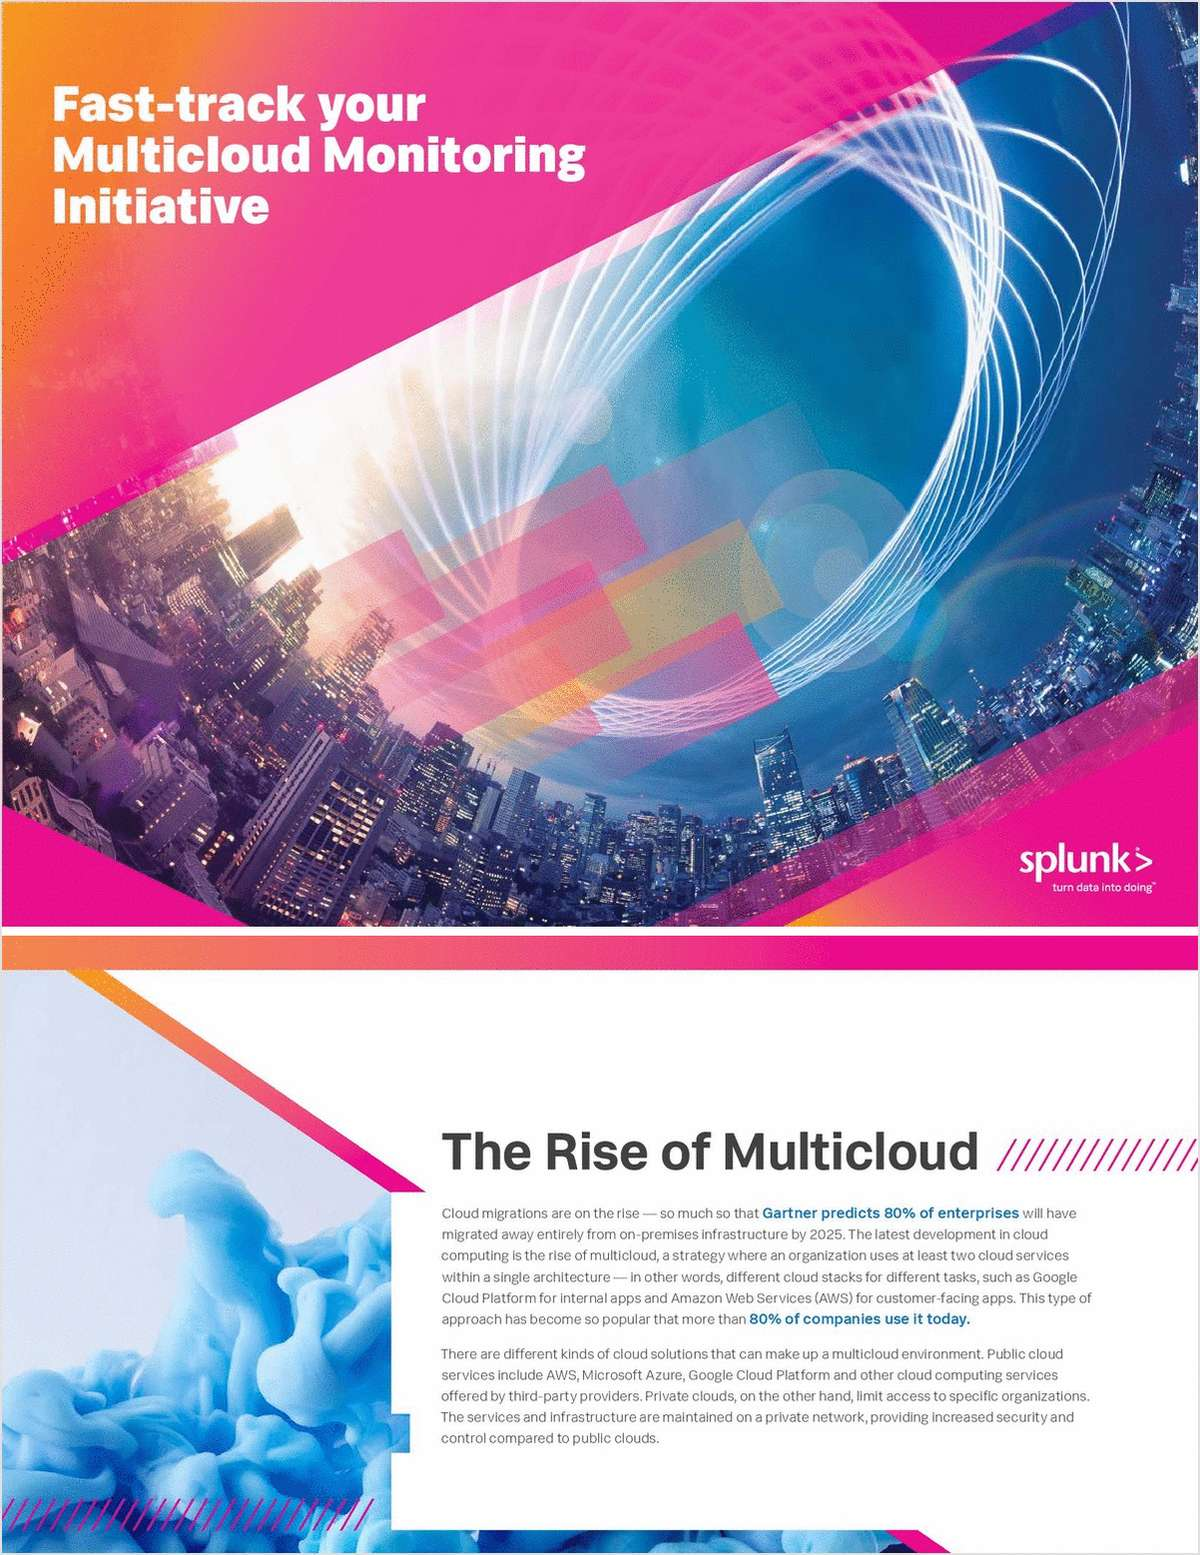 Fast-Track Your Multicloud Monitoring Initiative: How to Embrace New Multicloud Environments